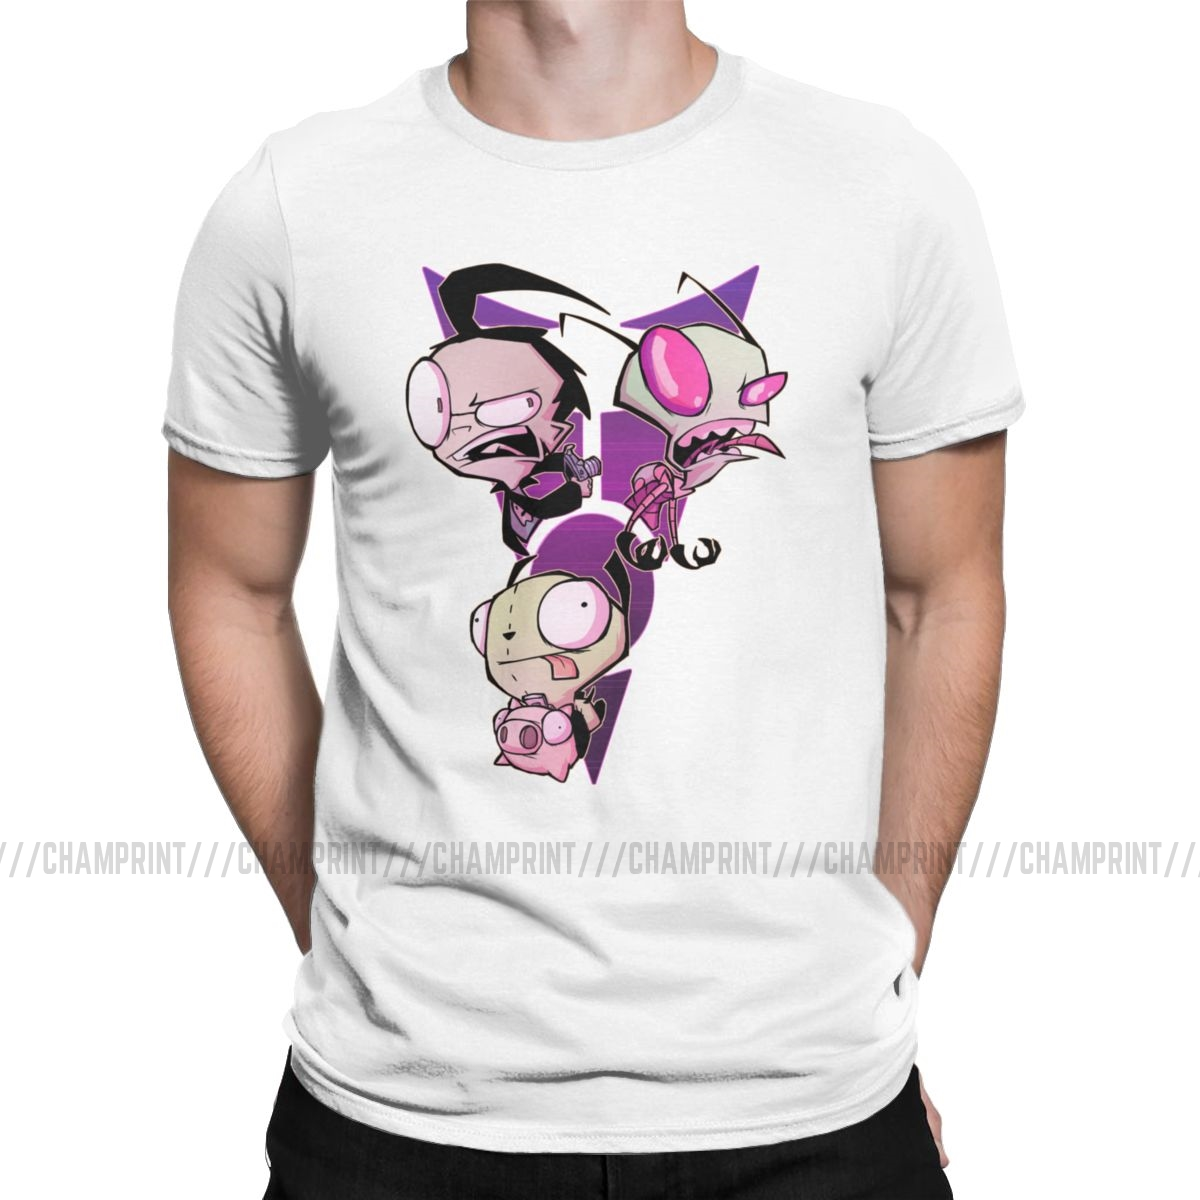 Funny Invader ZIM Alien Cartoon T-Shirt For Men Crew Neck Cotton T Shirts Short Sleeve Tee Shirt Printed Clothes